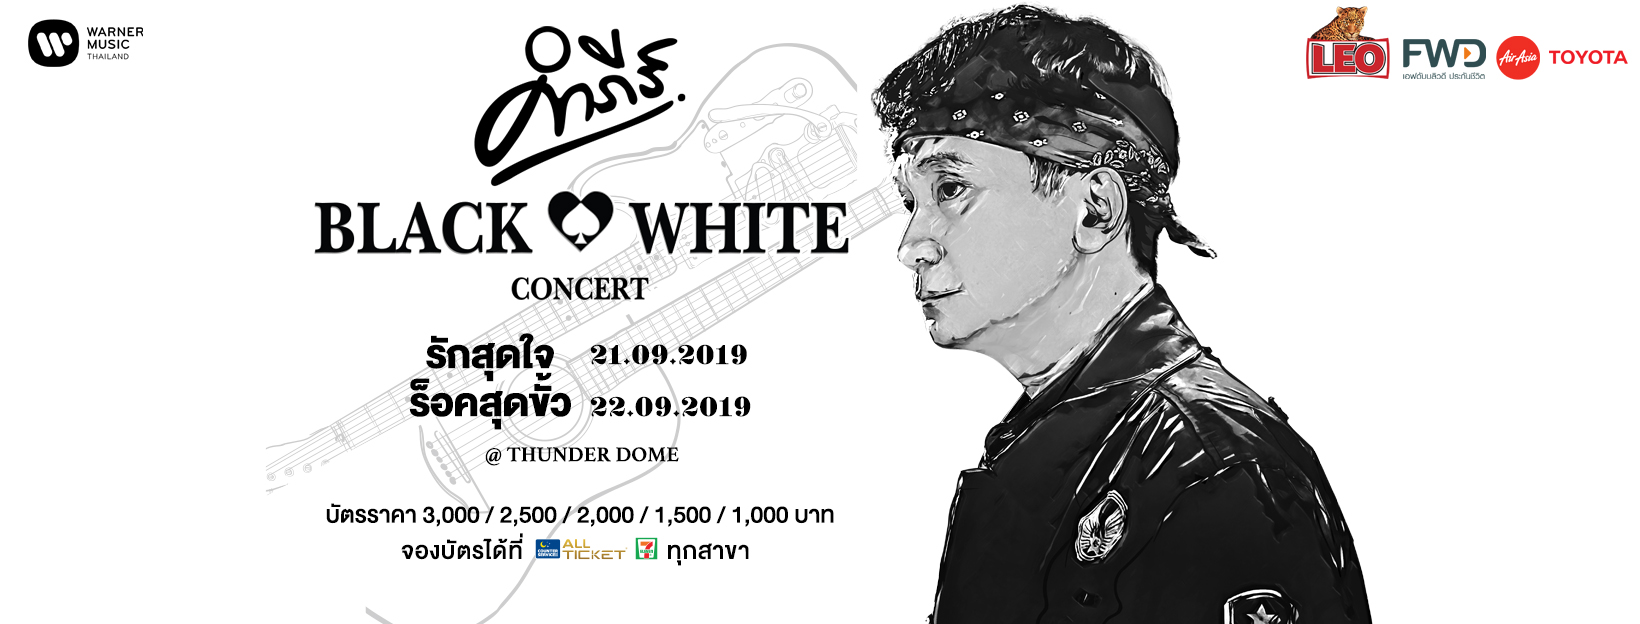 Black x White Concert Pu Pongsit Events This Weekend 21 22 September